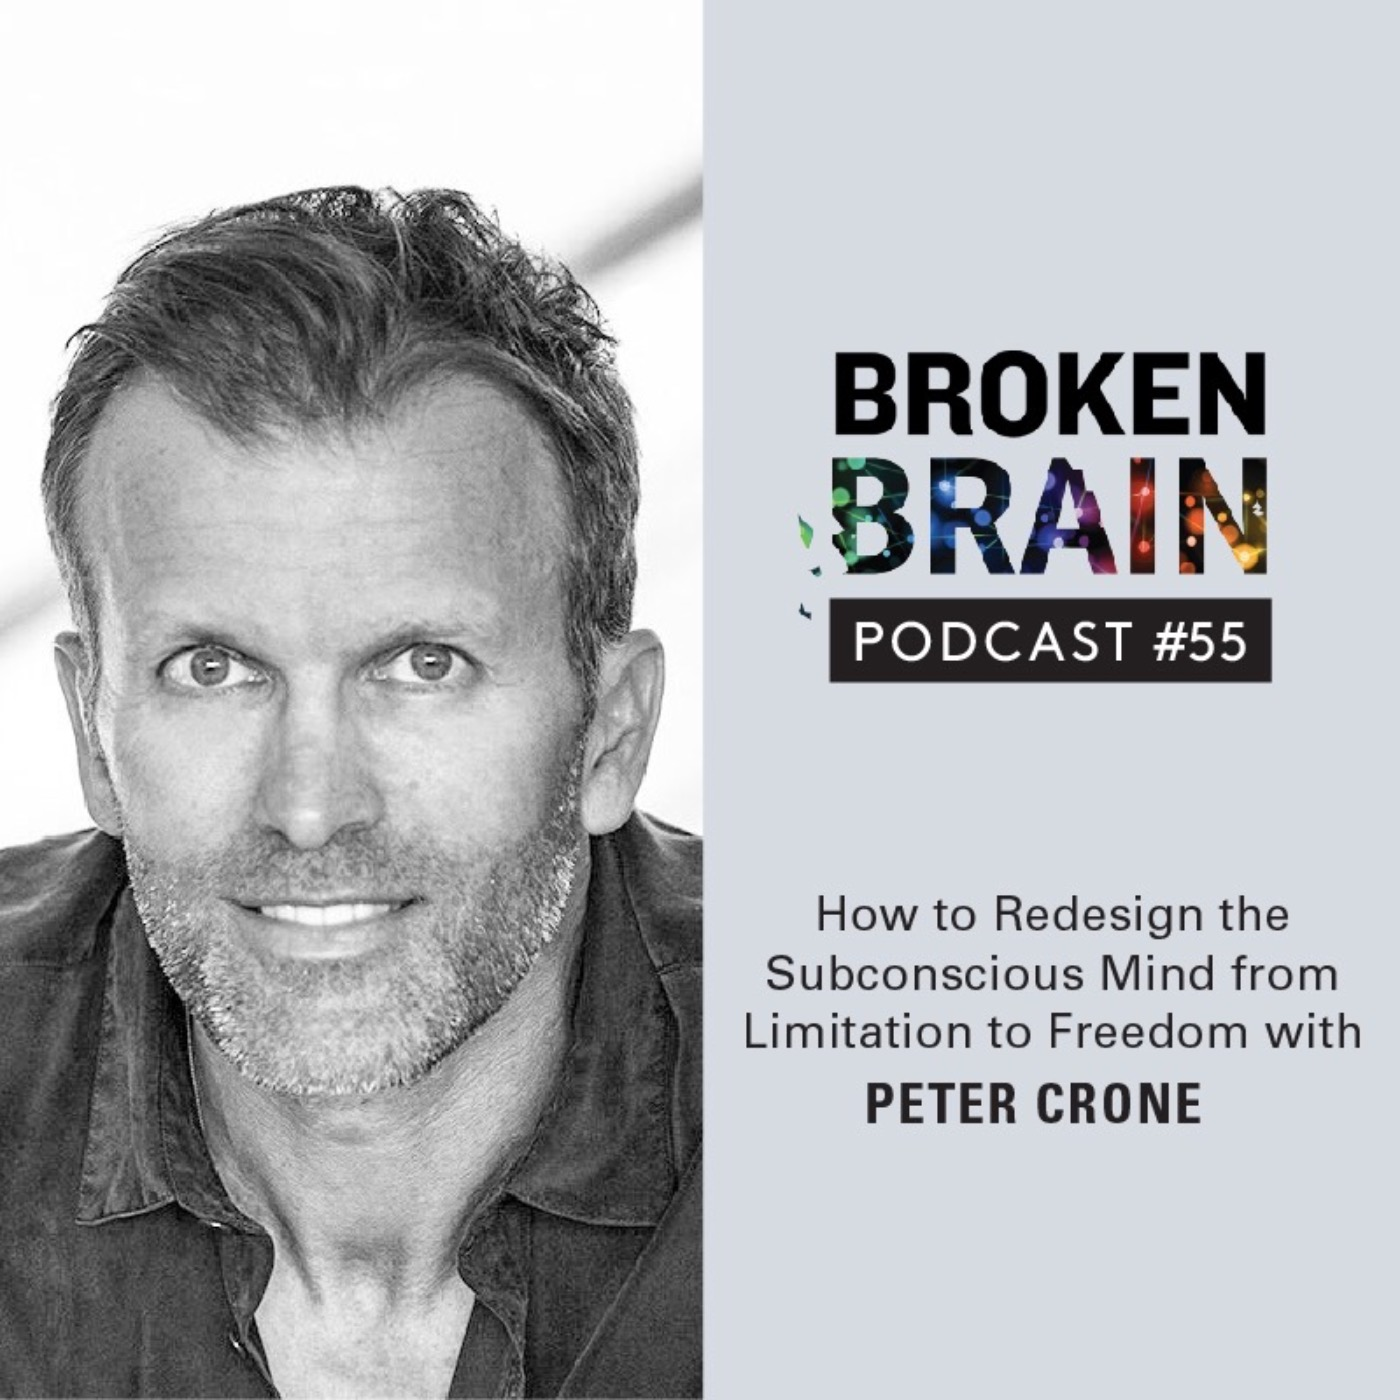 #55: How to Redesign the Subconscious Mind from Limitation to Freedom with Peter Crone